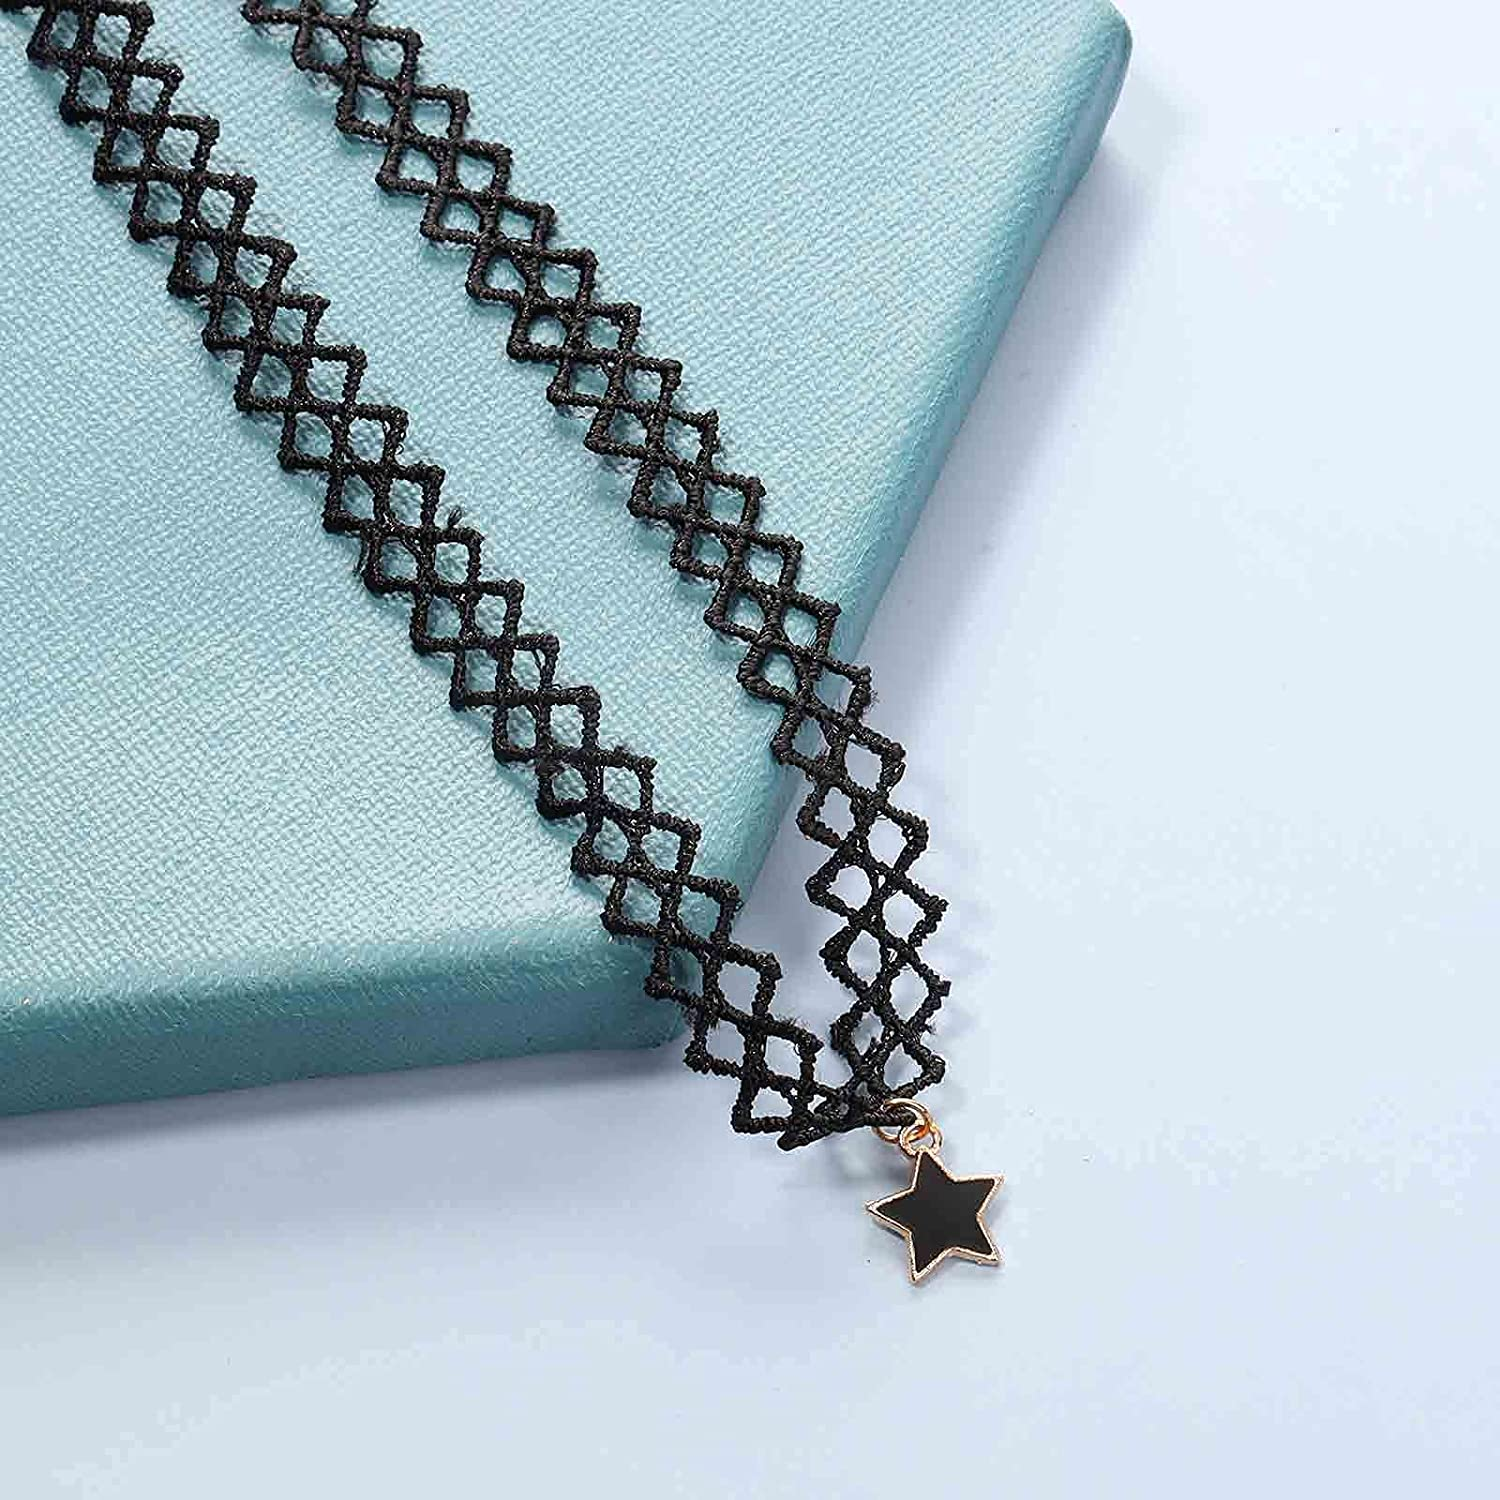 Yheakne Black Tattoo Choker Necklace Star Pendant Necklace Chain Short Hollow Lace Collar Necklace Jewelry for Women and Girls (Star)